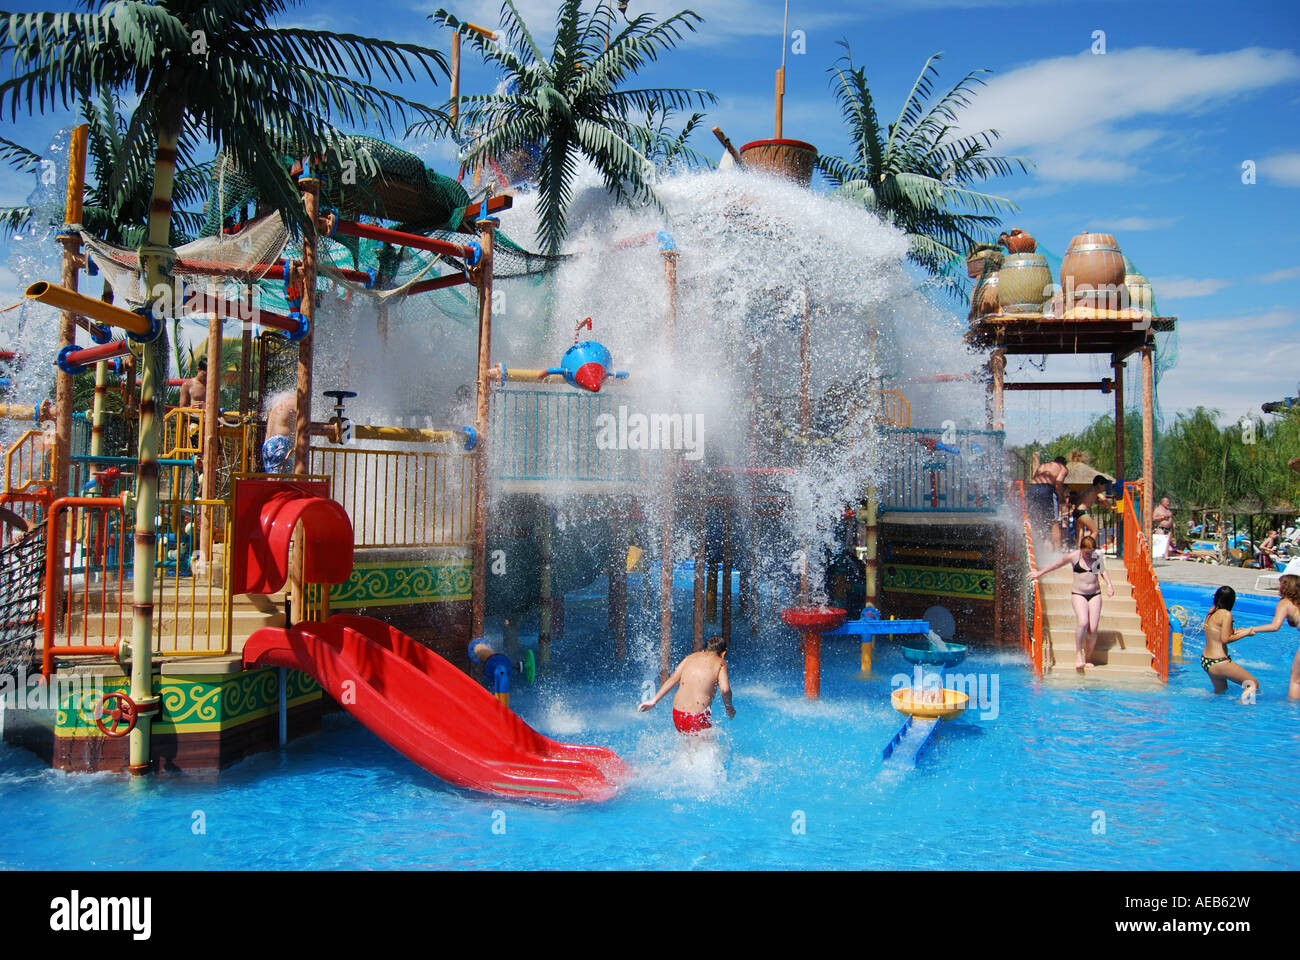 Childrens Pirate Caribbean Adventure, Aqualand Water Park ...